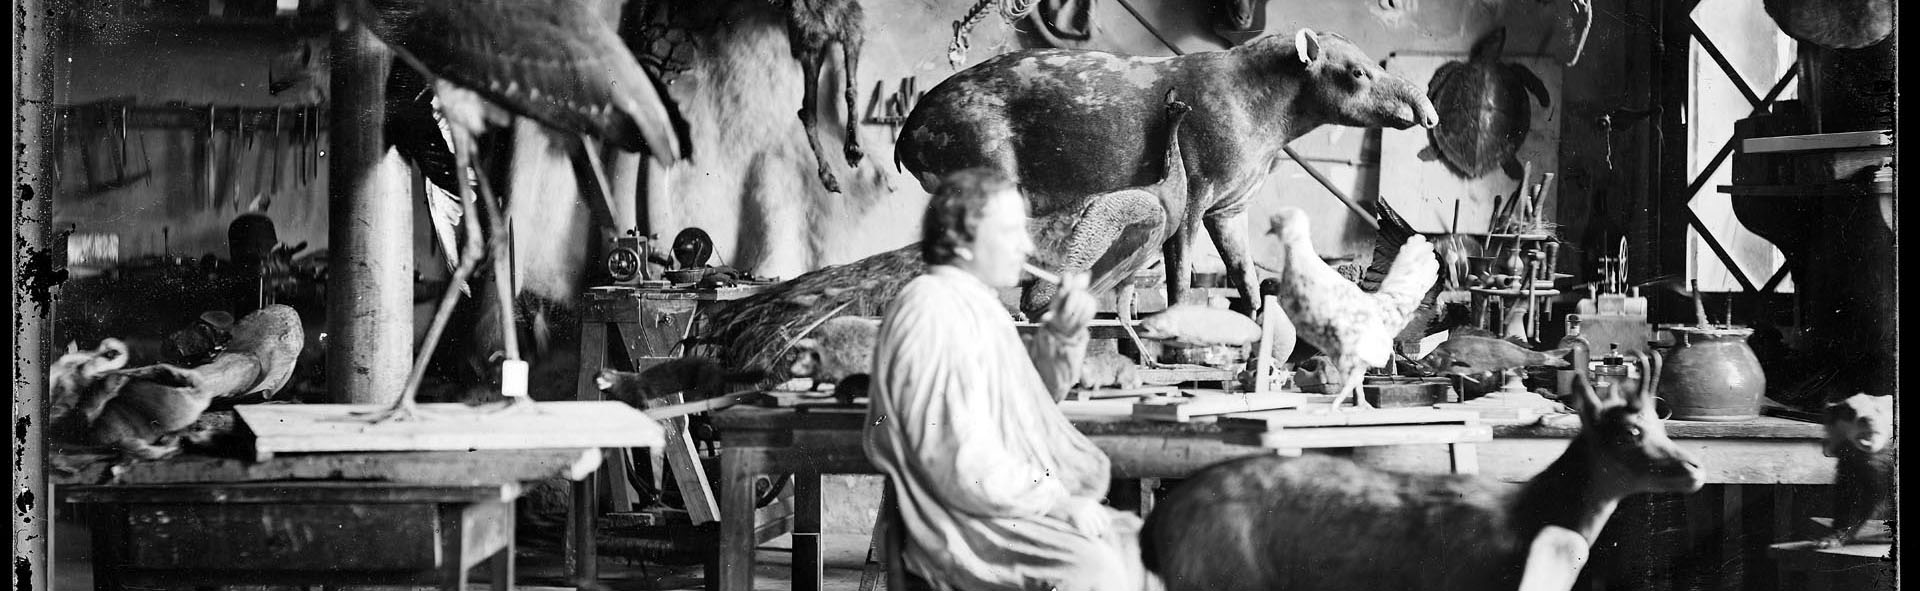 Atelier de taxidermie